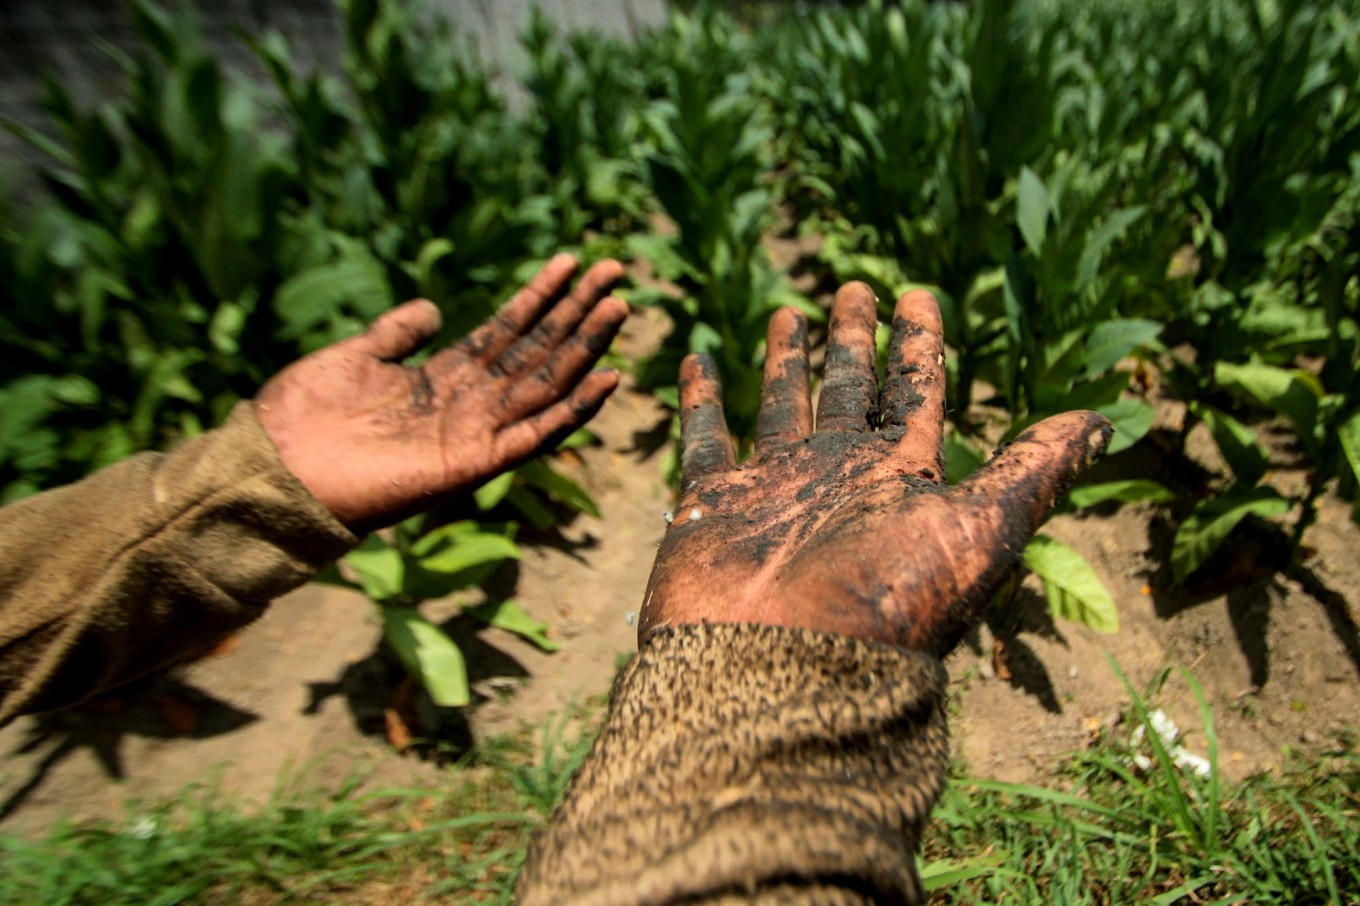 A worker shows his blackened hands due to the nicotine contained in tobacco plants. Many workers suffer from irritation to their arms and legs after working in the field. JP/Aditya Sagita